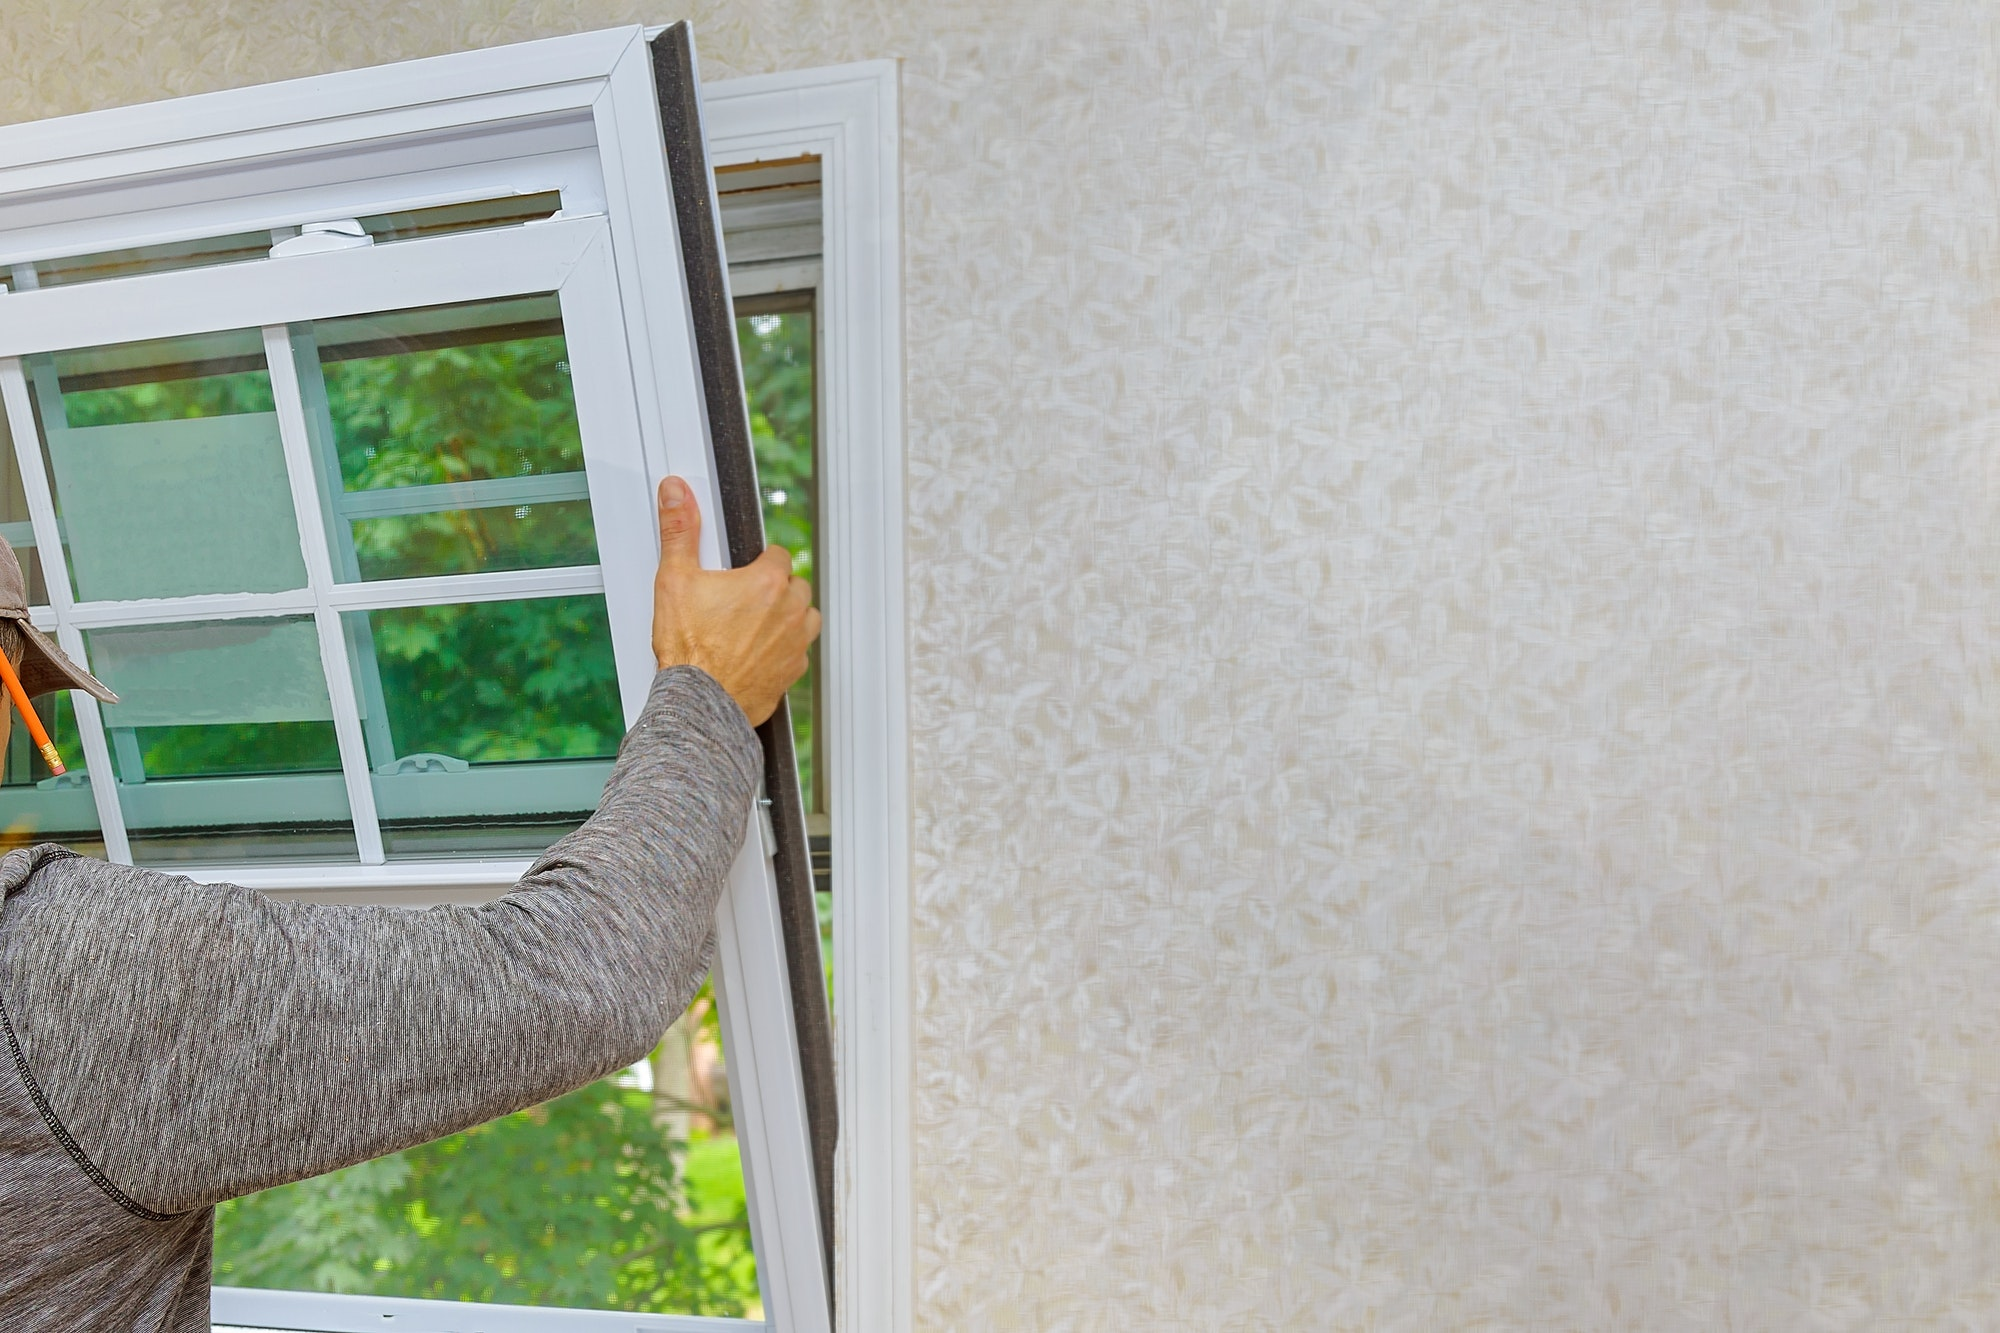 Window installer installing replacement windows in Akron, Ohio house